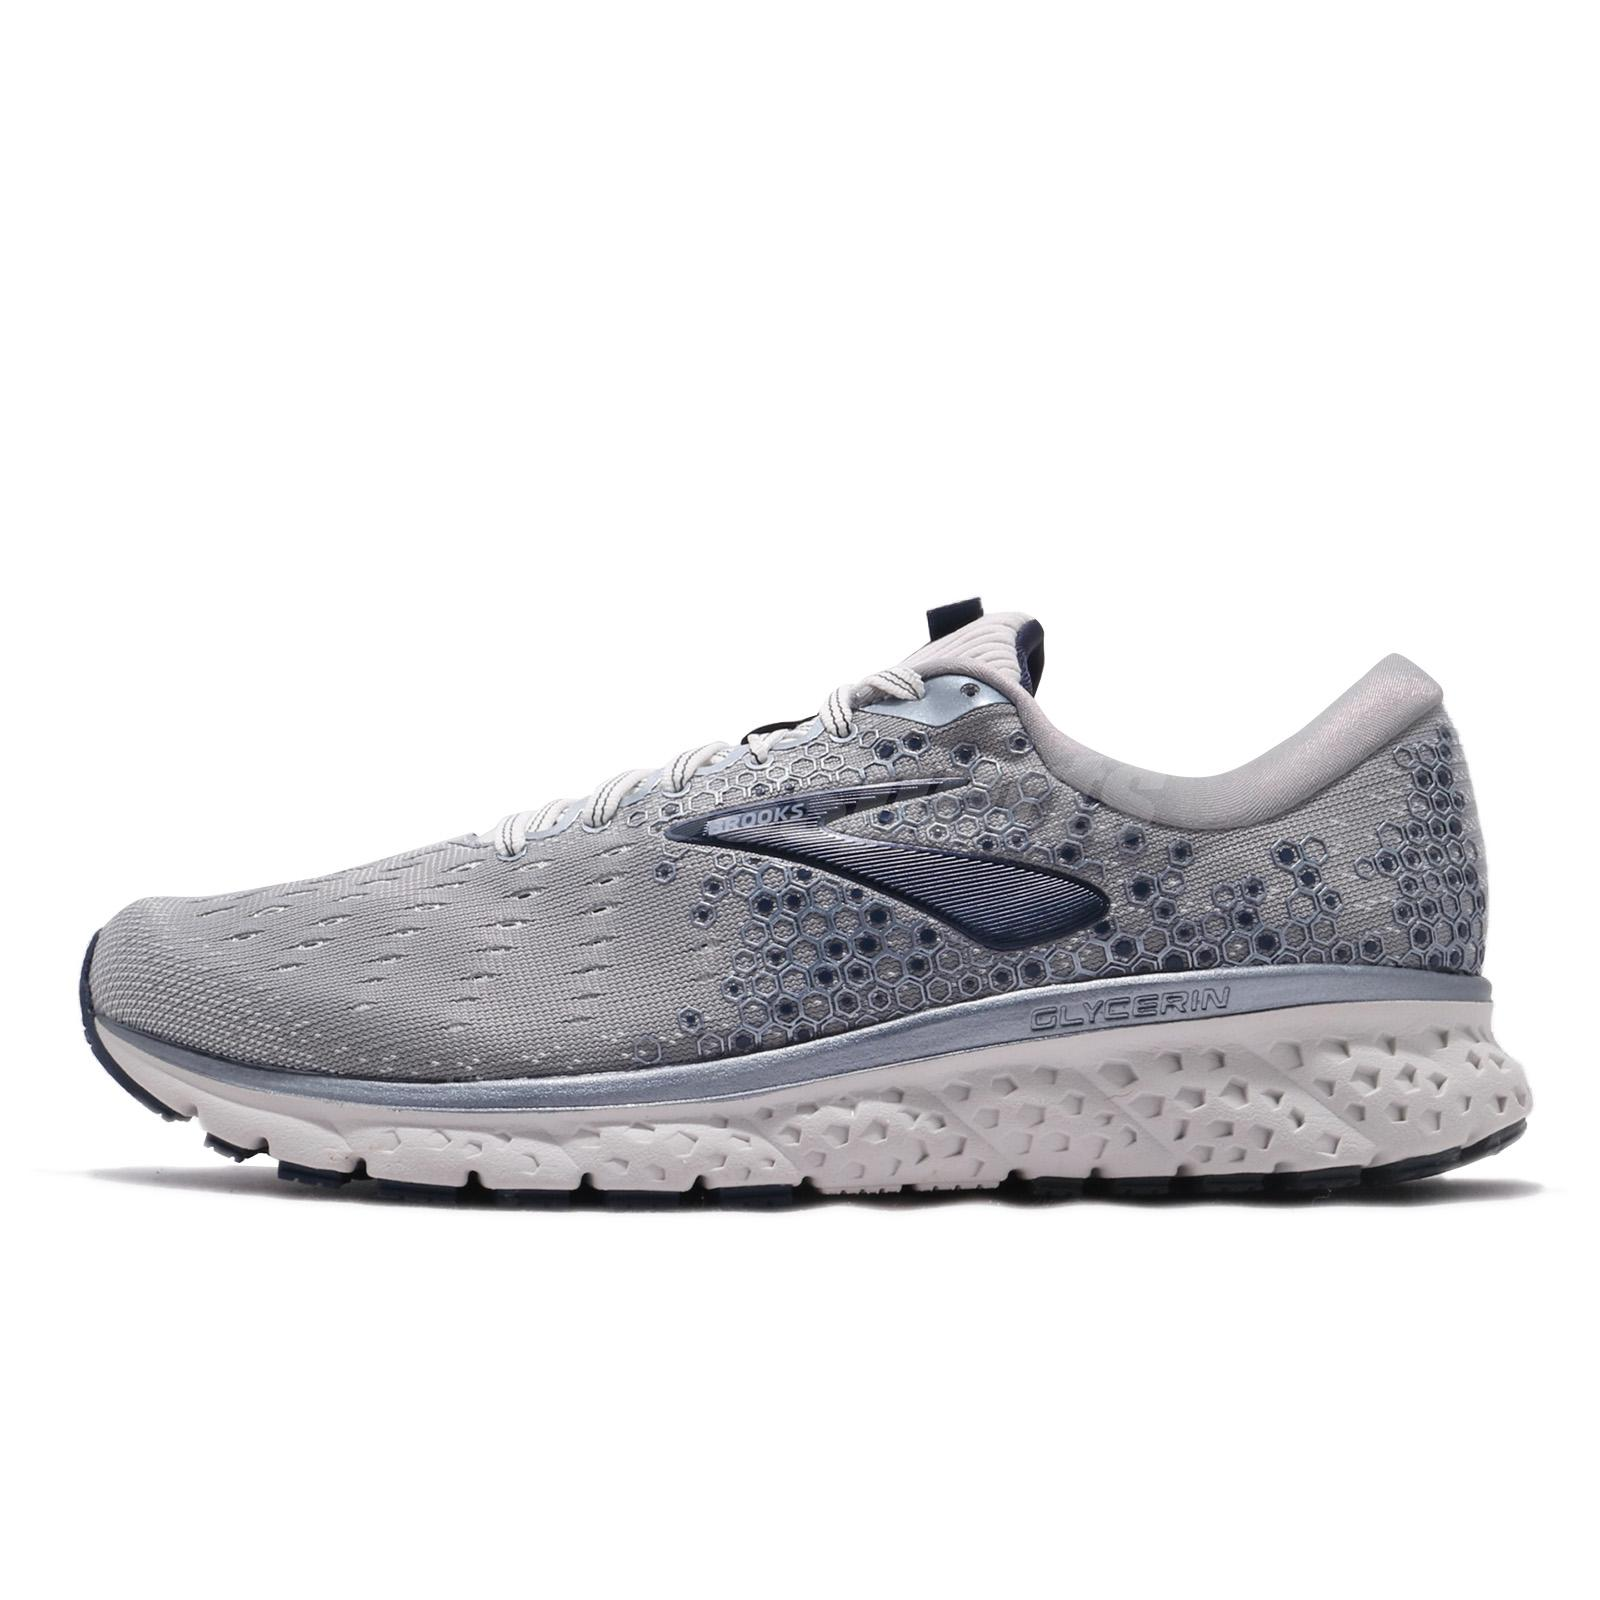 1e7eafd5366 Brooks Glycerin 17 2E Wide Grey Navy White Men Running Shoes Sneakers  110296 2E